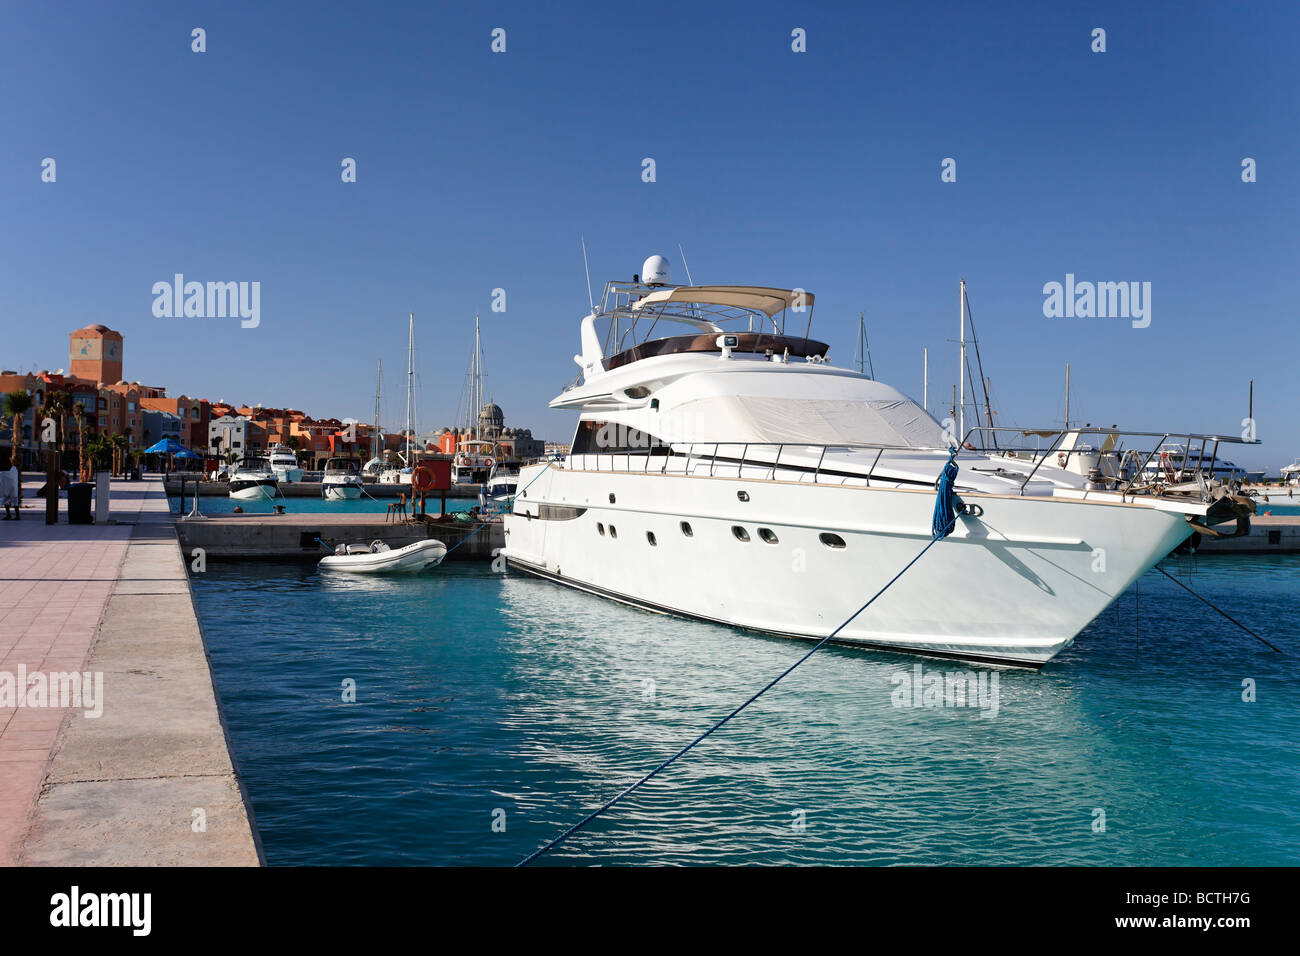 Private yachts in marina, Hurghada, Egypt, Red Sea, Africa - Stock Image